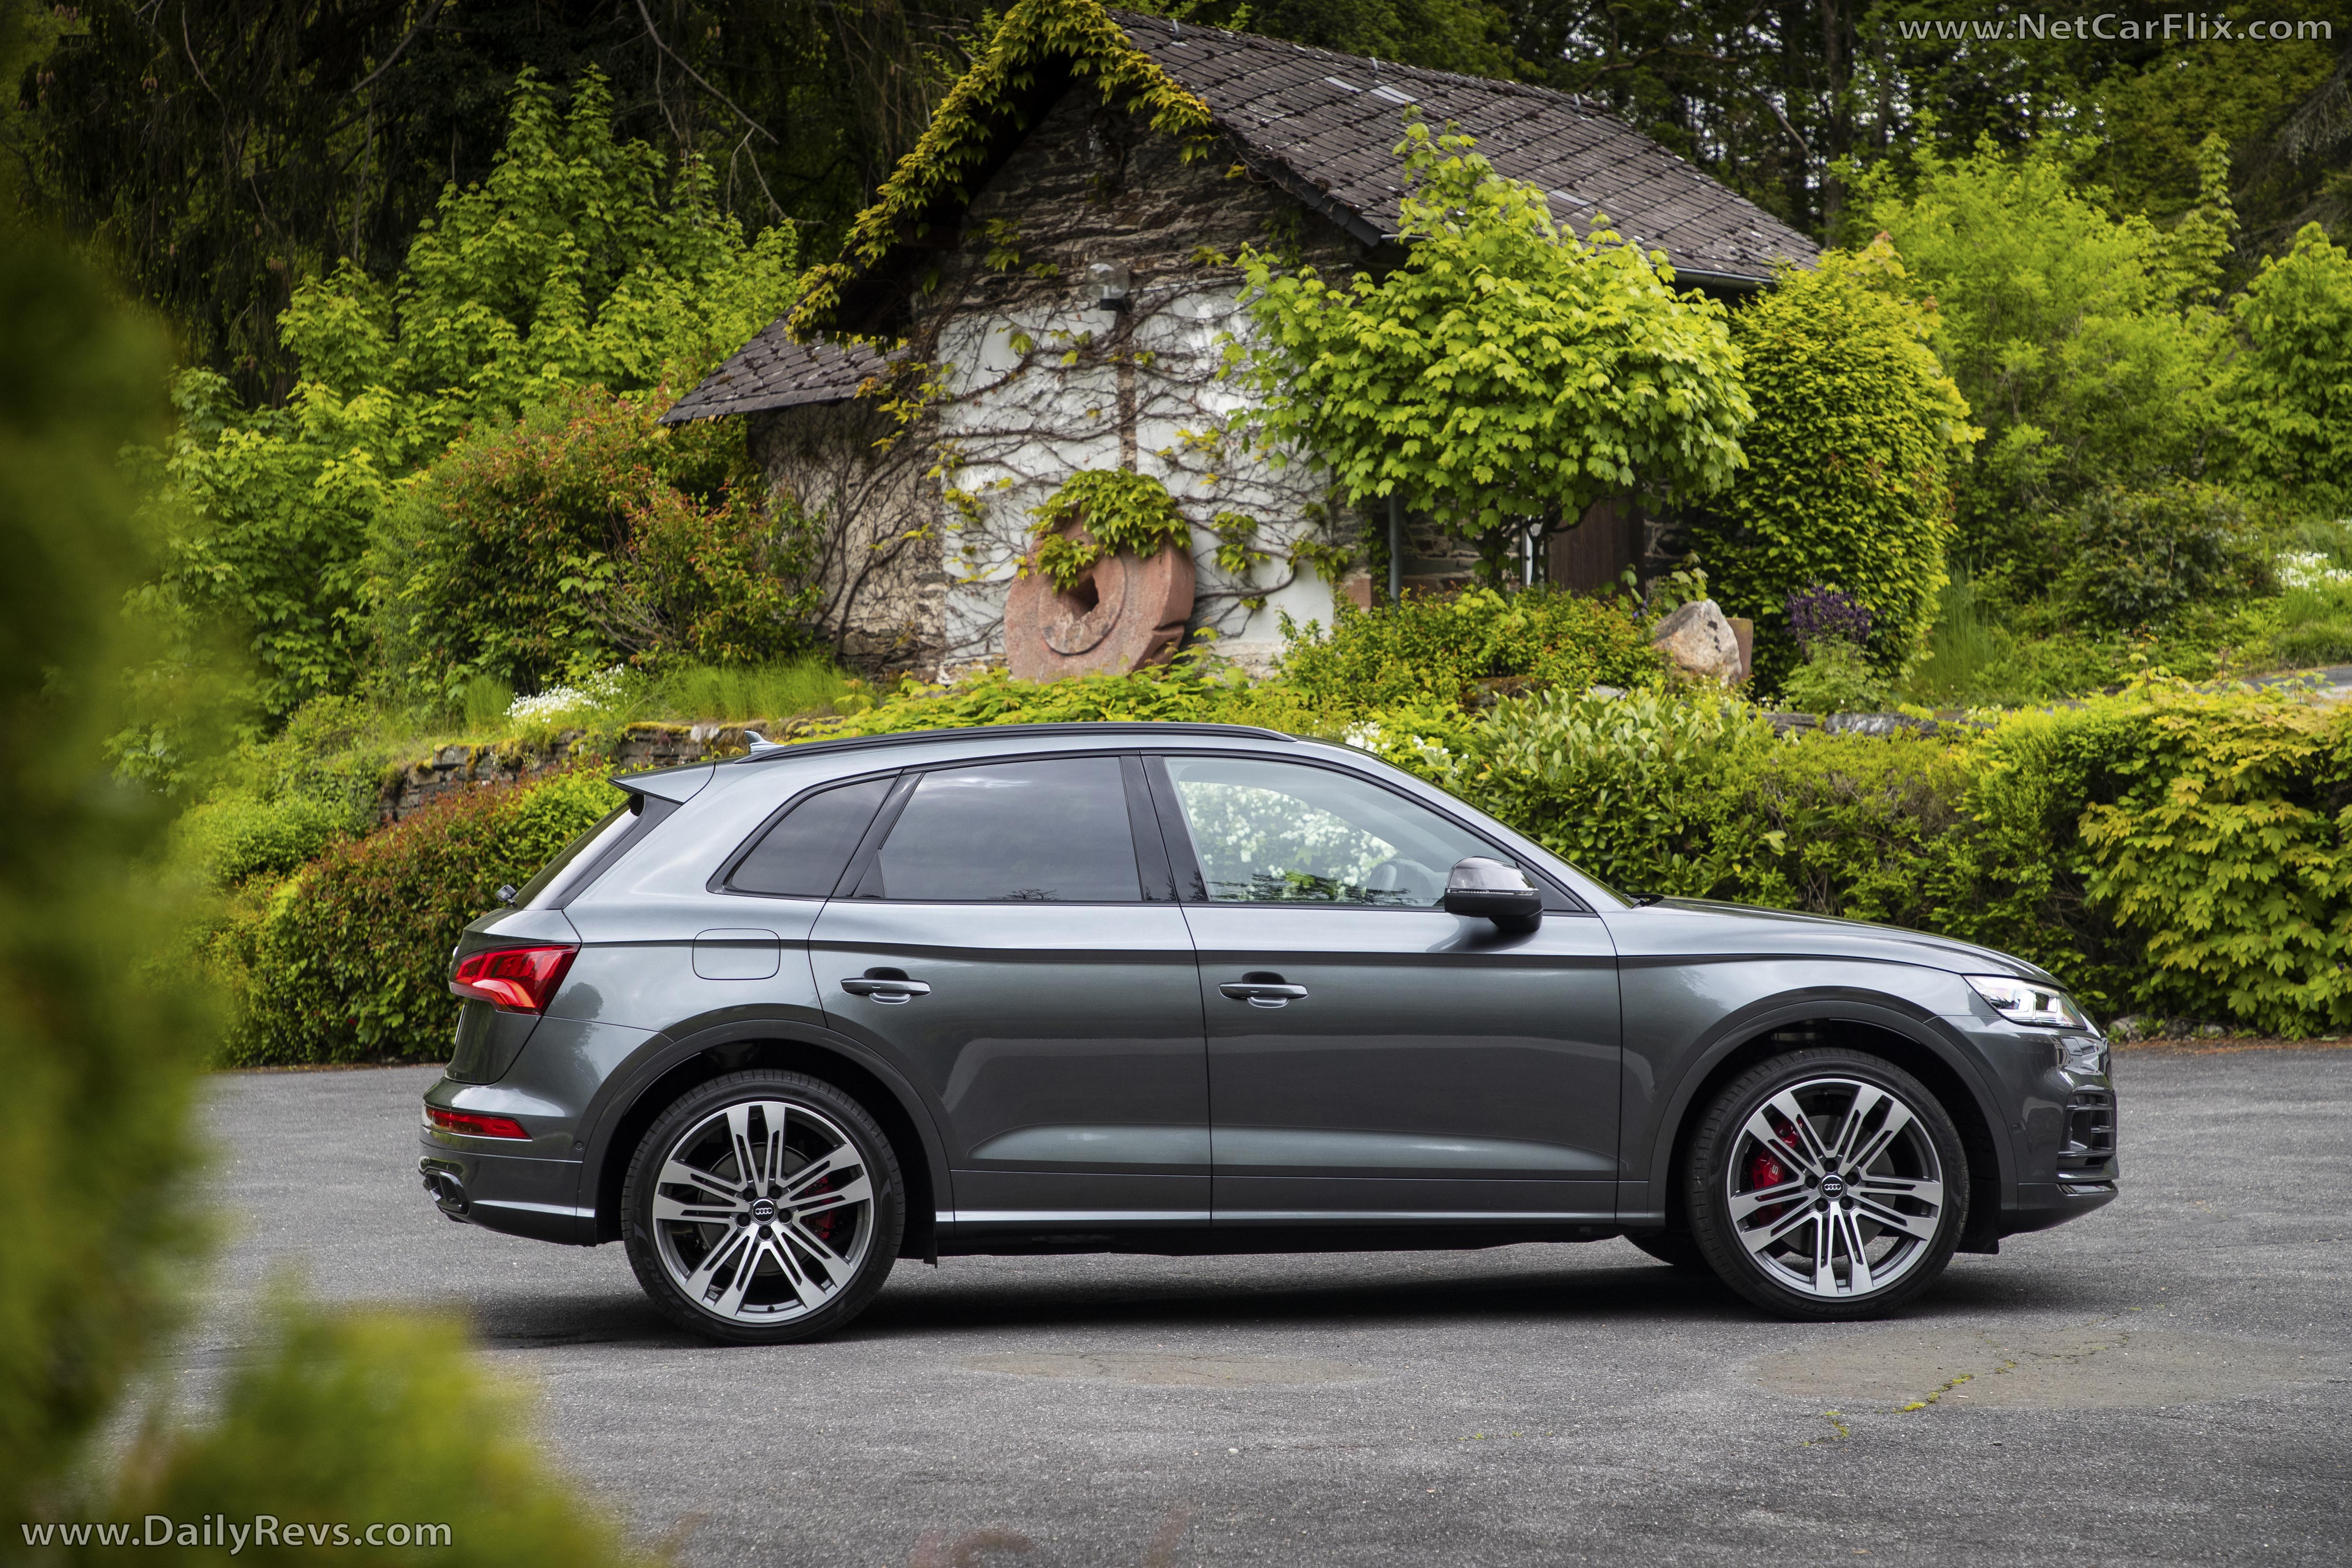 2020 Audi SQ5 TDI - Pictures, Images, Photos & Wallpapers ...